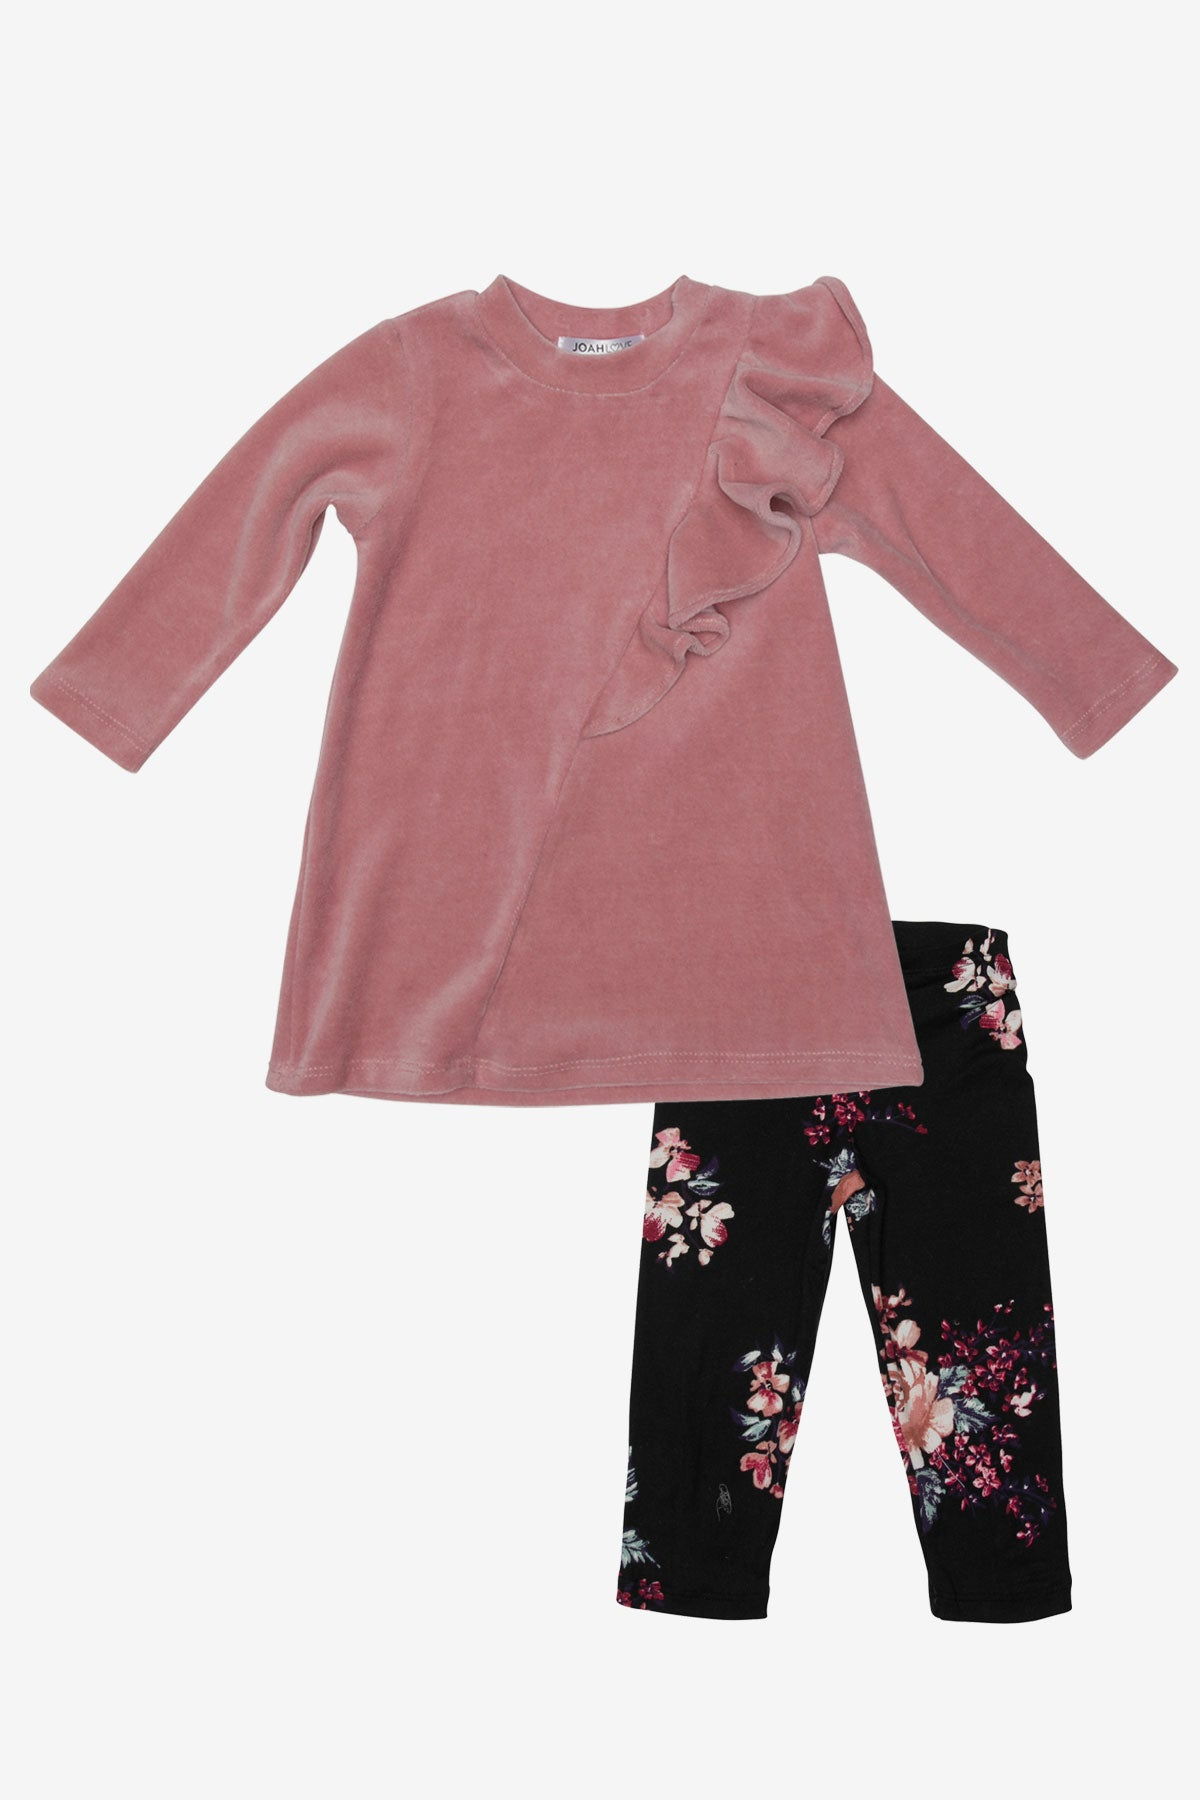 278c4eab5 Joah Love Baby Minka V Baby Girls Set - Mini Ruby